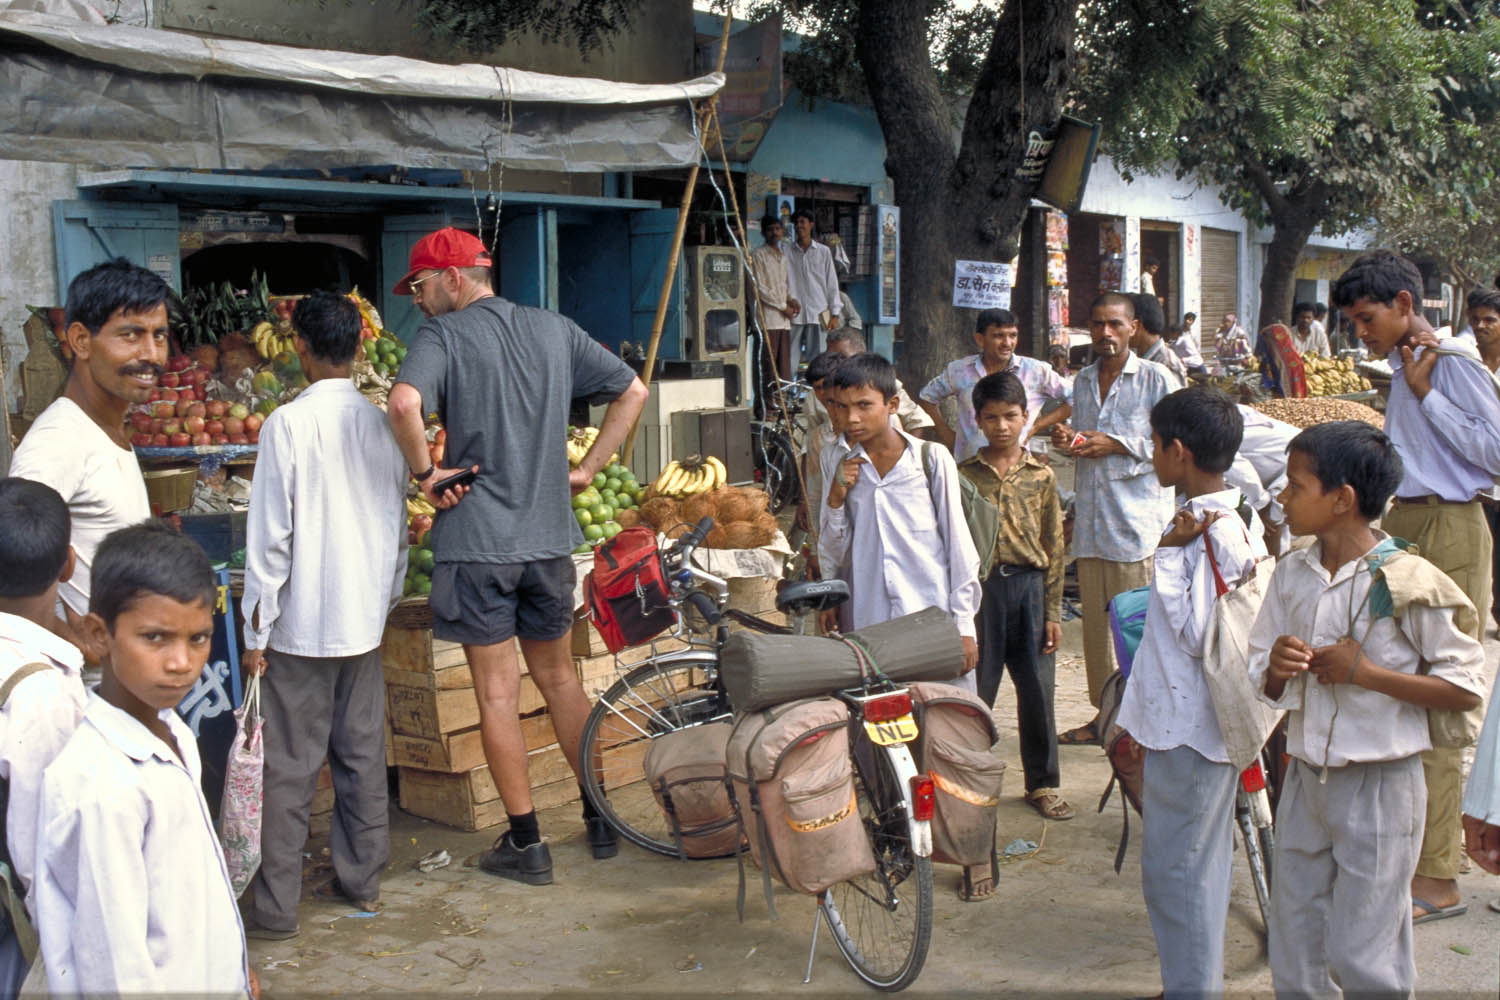 shopping at the fruit stall